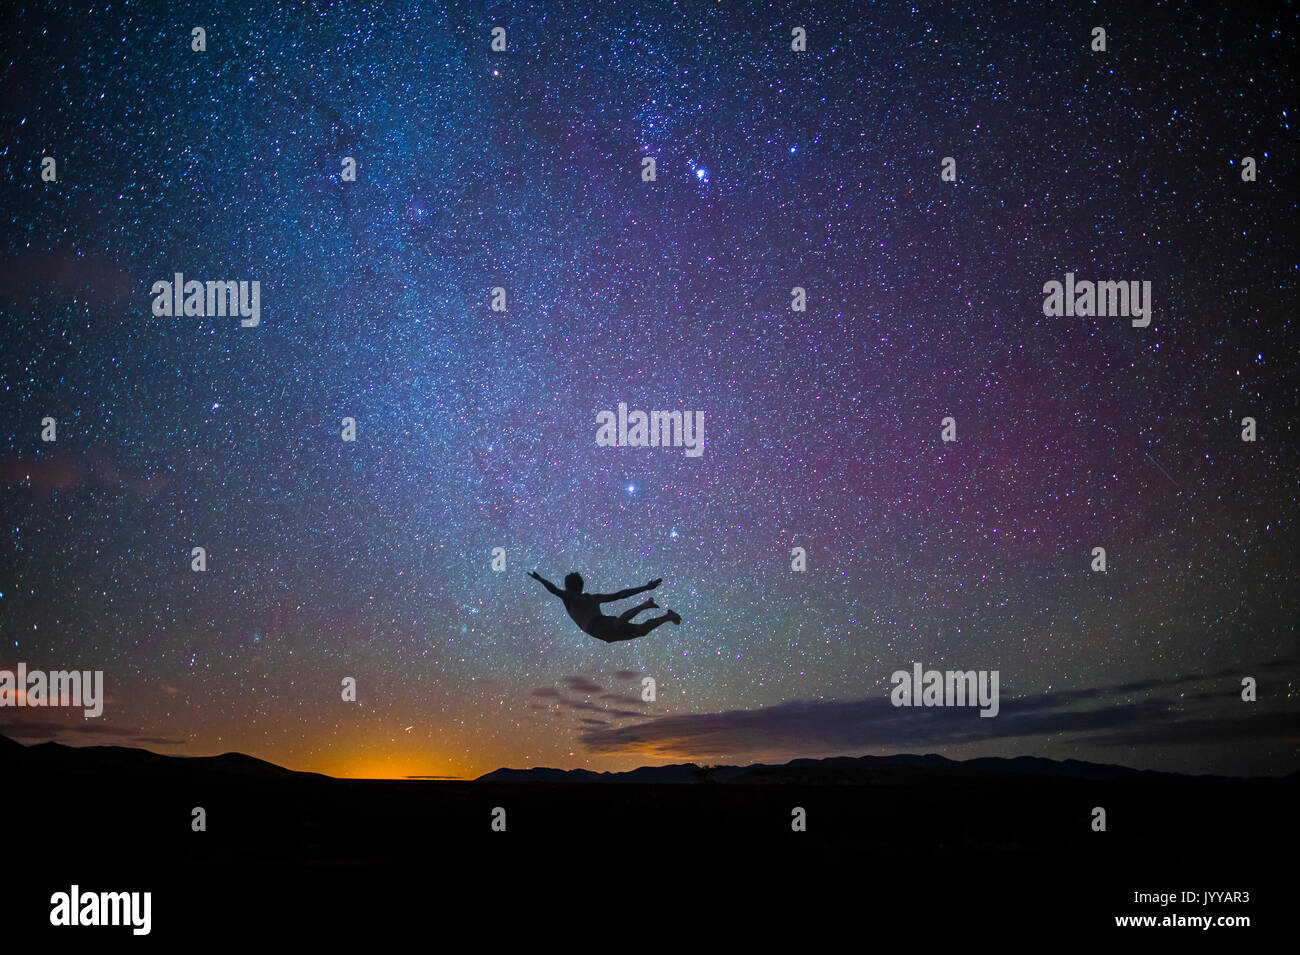 Boy Jumping In Air At Sunset With Stars - Stock Image